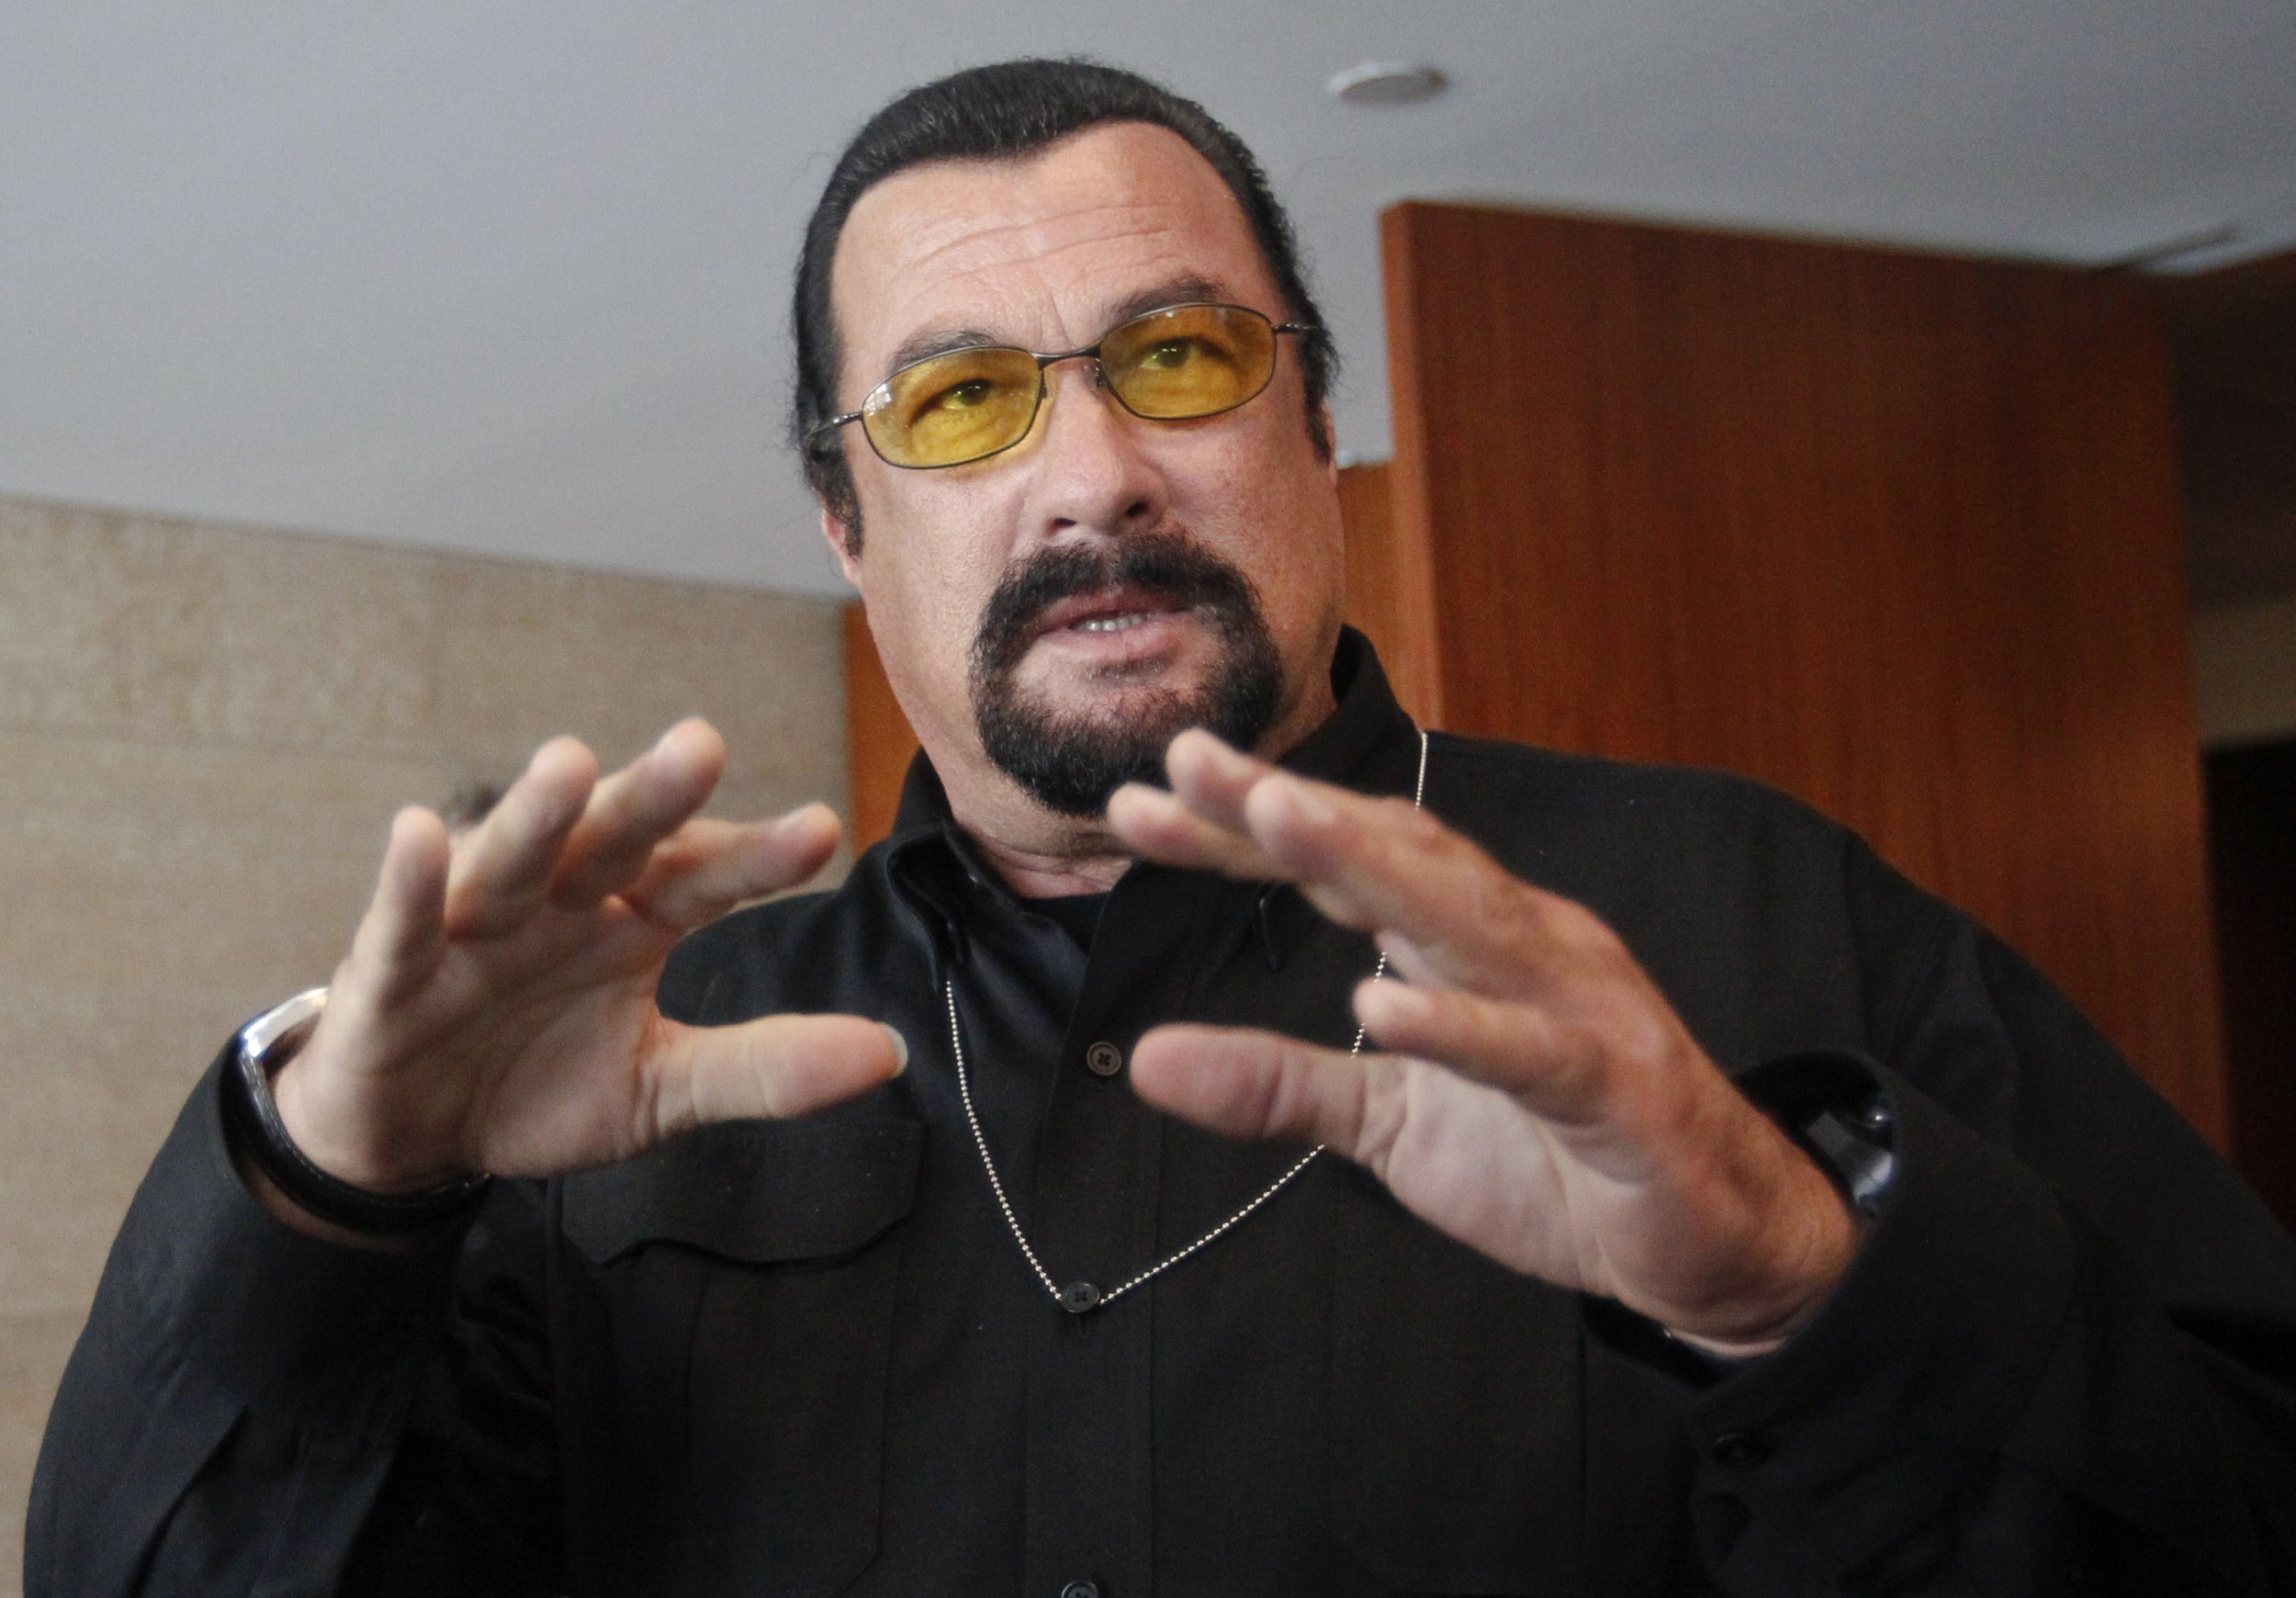 Steven Seagal in Russia